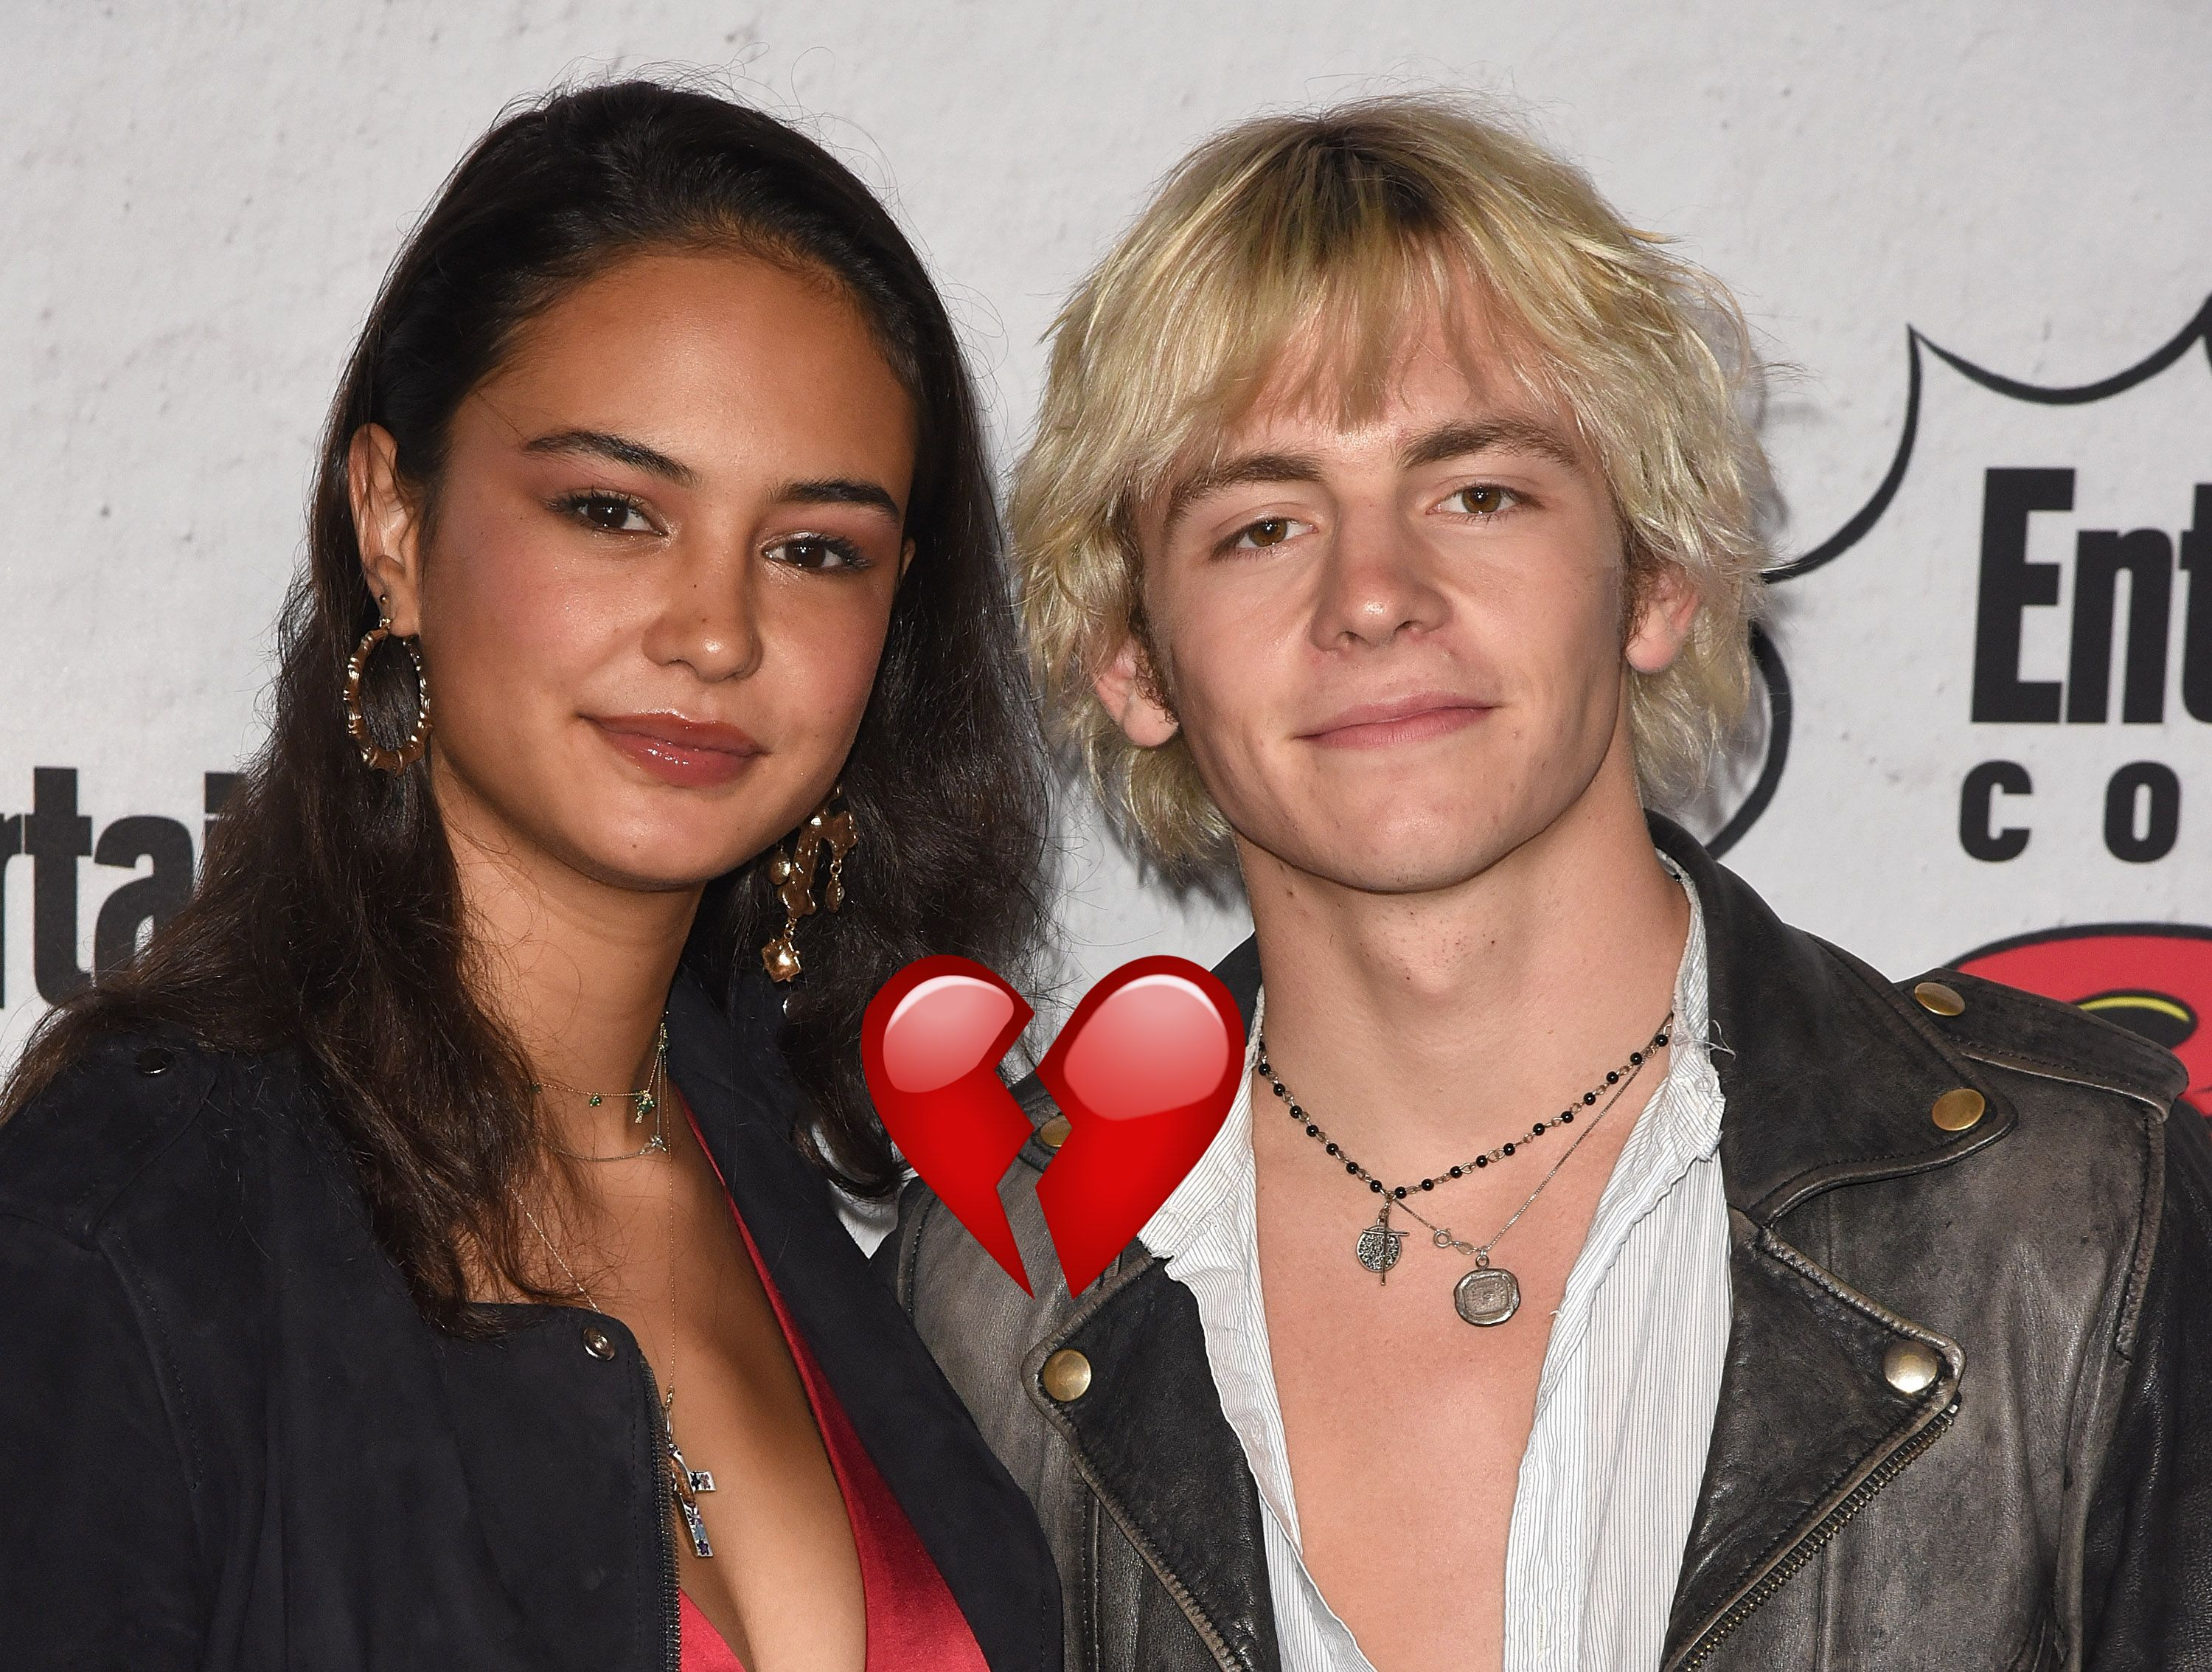 Ross lynch and laura marano dating association physi Astrological publications at who is jane lynch dating site home and abroad.